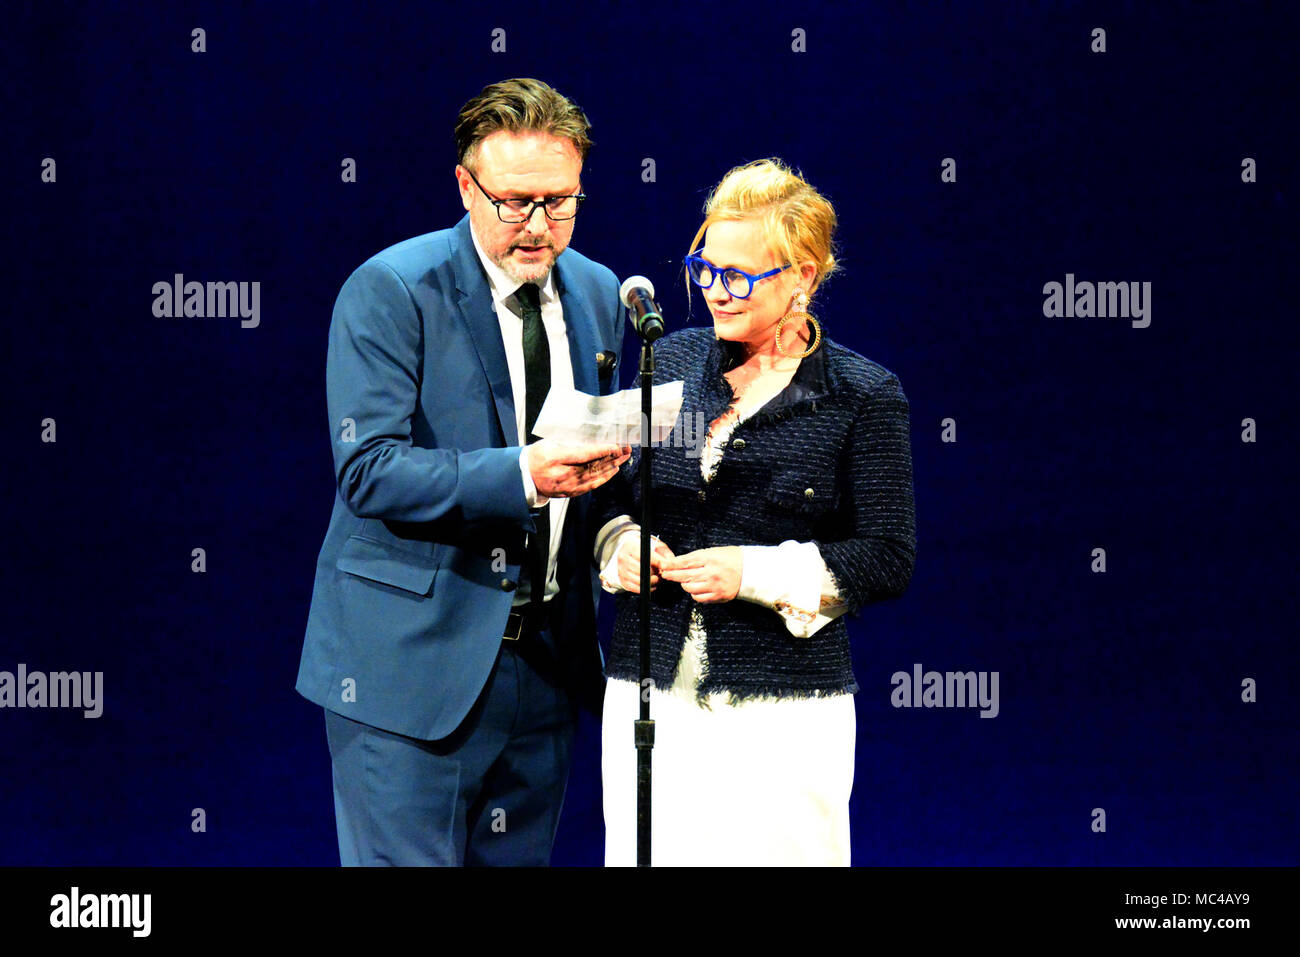 Los Angeles, CA, USA. 12th Apr, 2018. Actors - PATRICIA ARQUETTE and her brother DAVID ARQUETTE on stage at The We Are One Benefit Concert for The Arts, supporting music and art in Los Angeles Unified School District, The Dorothy Chandler Pavillion, Los Angeles, California, USA, April 12, 2018. The first Annual benefit concert for arts education for the LAUSD.Credit Image cr Scott Mitchell/ZUMA Press Credit: Scott Mitchell/ZUMA Wire/Alamy Live News - Stock Image